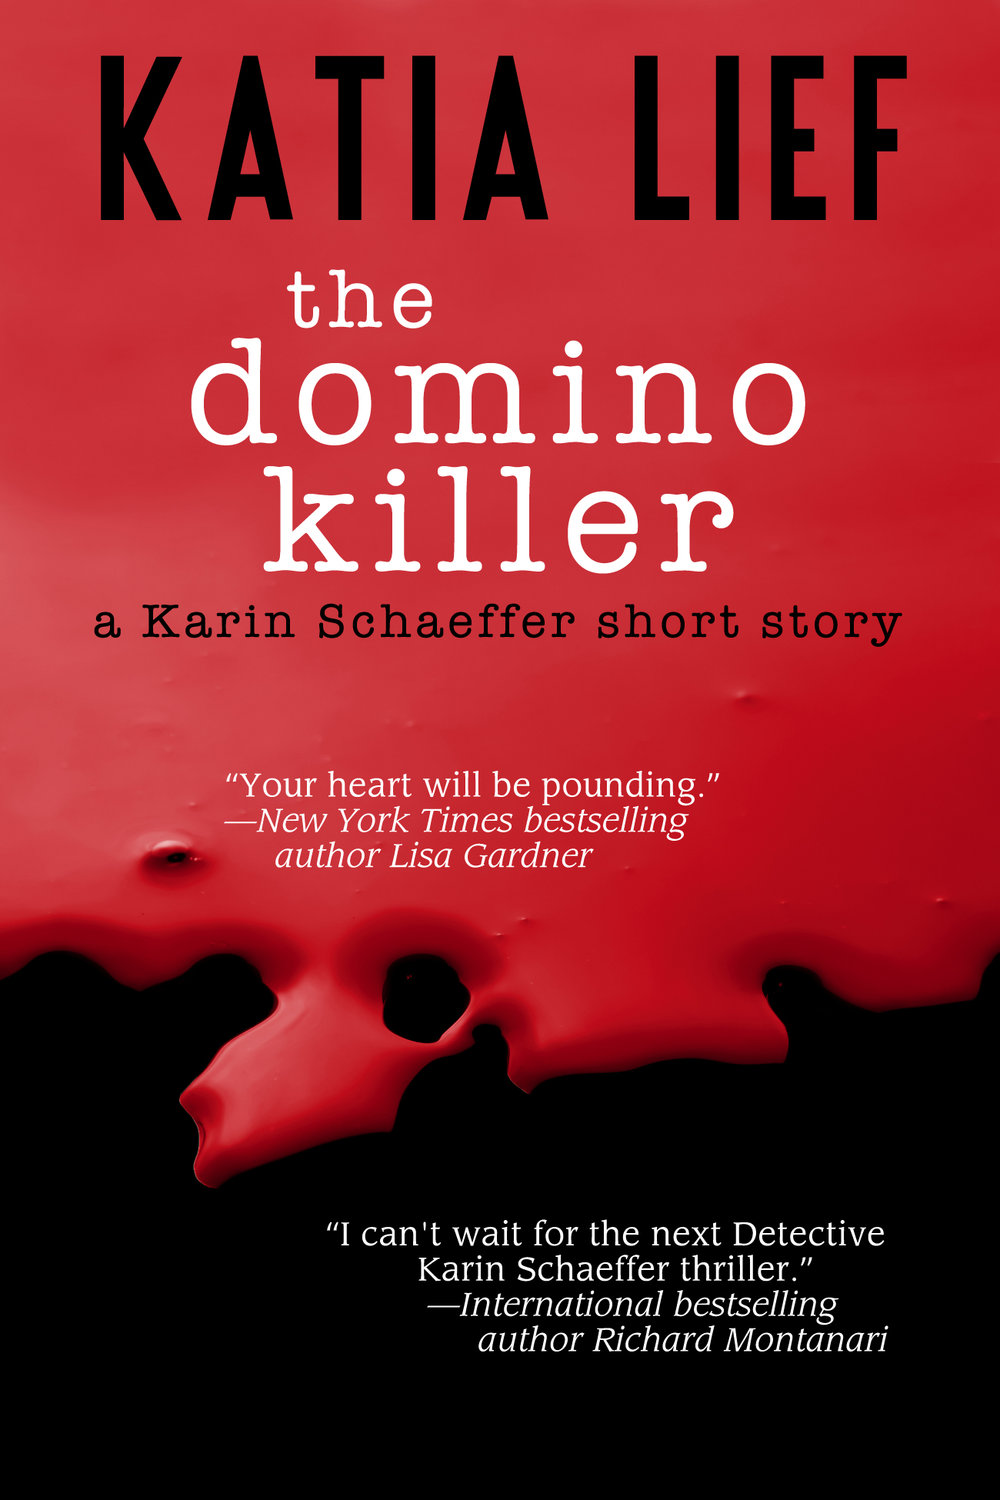 A Karin Schaeffer short story - In this short prequel to You Are Next, the novel that begins the Karin Schaeffer crime investigation series, Karin returns home to discover her family murdered by the notorious Domino Killer, who she has been hunting as part of a police task force.Learn More